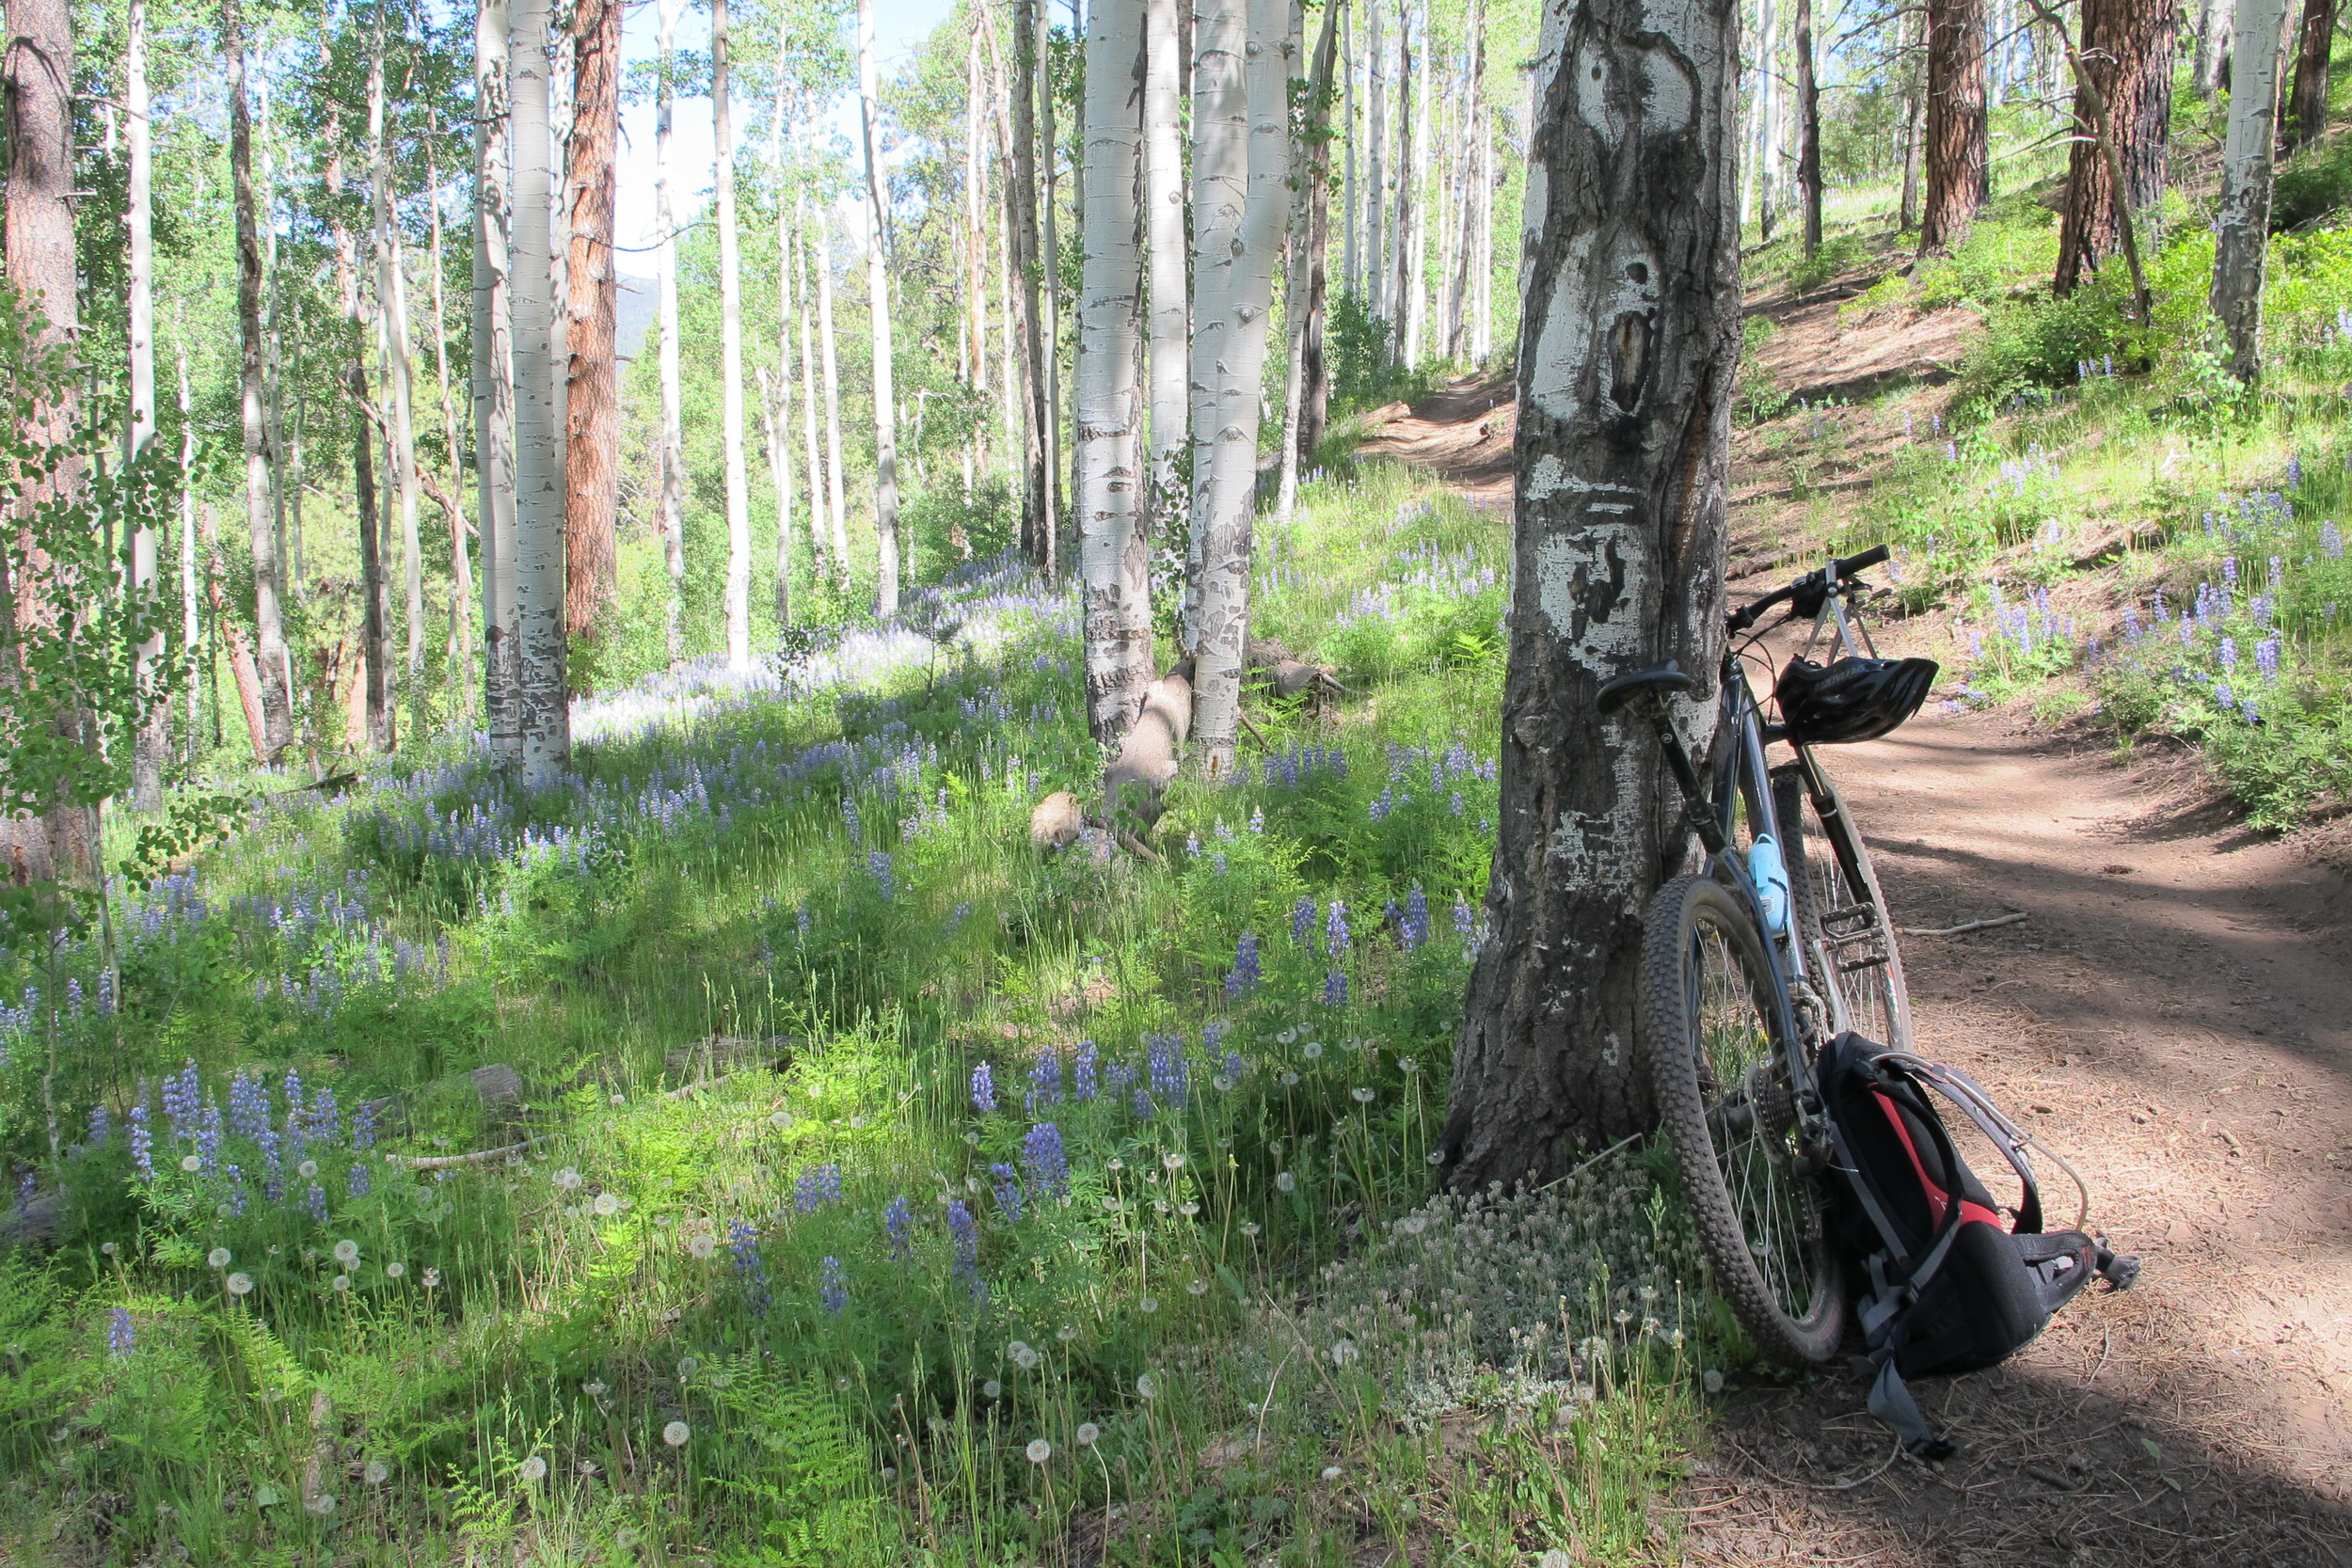 I couldn't be happier that the road and weather led us to Durango. The biking was incredible and carpeted with wildflowers.